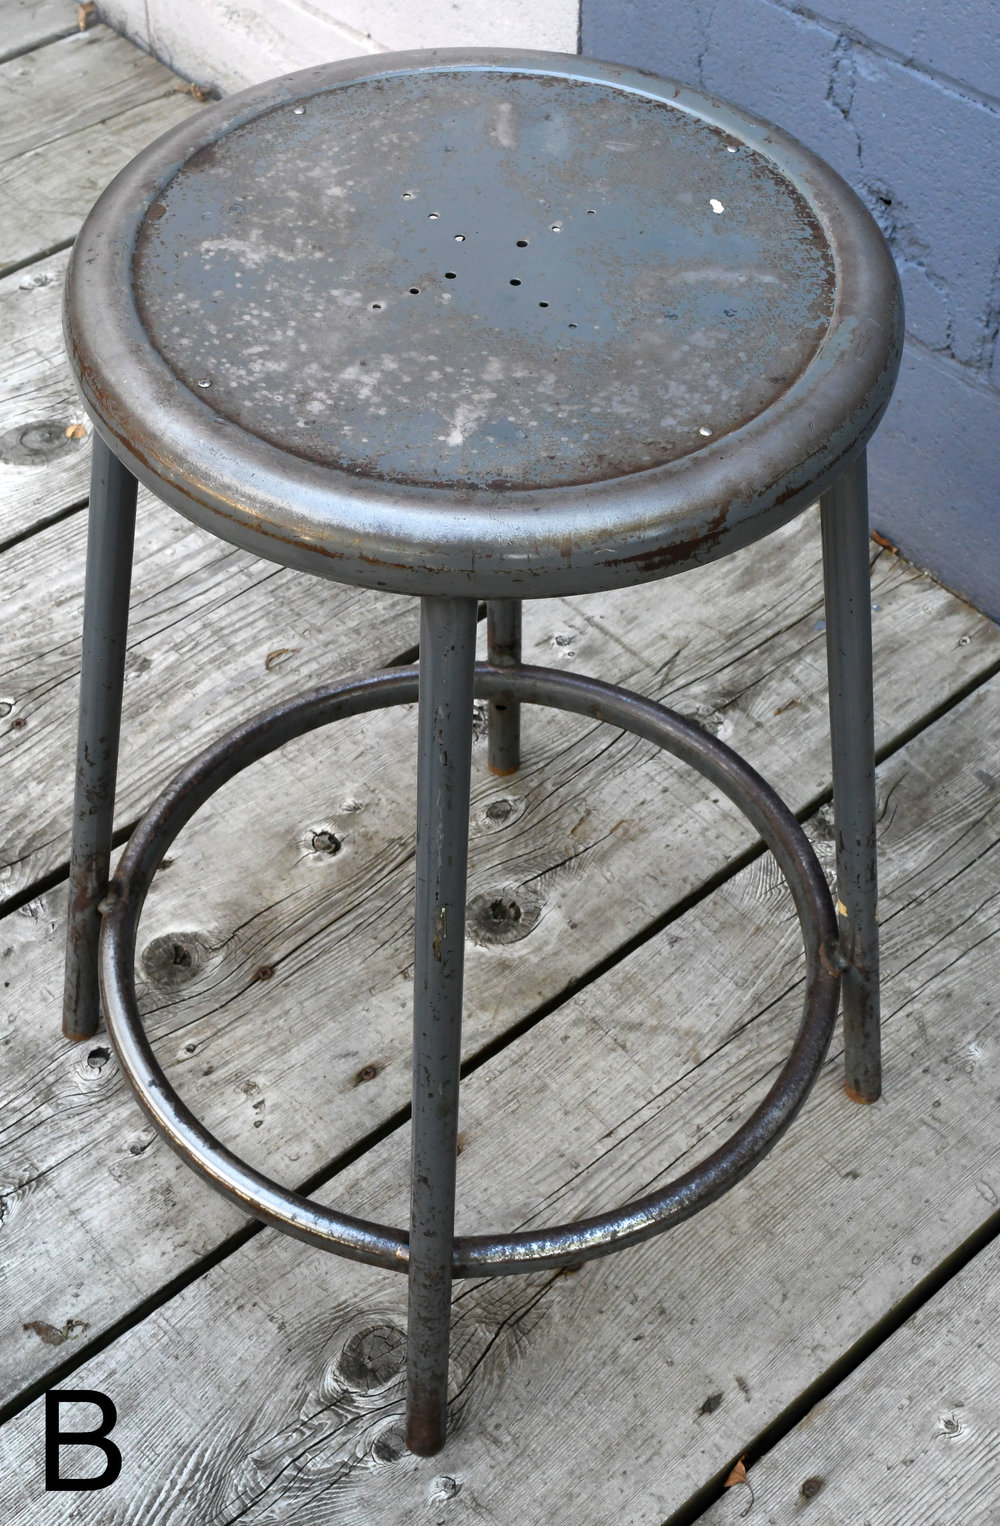 47340-art-school-stools-style-B-with-letter.jpg